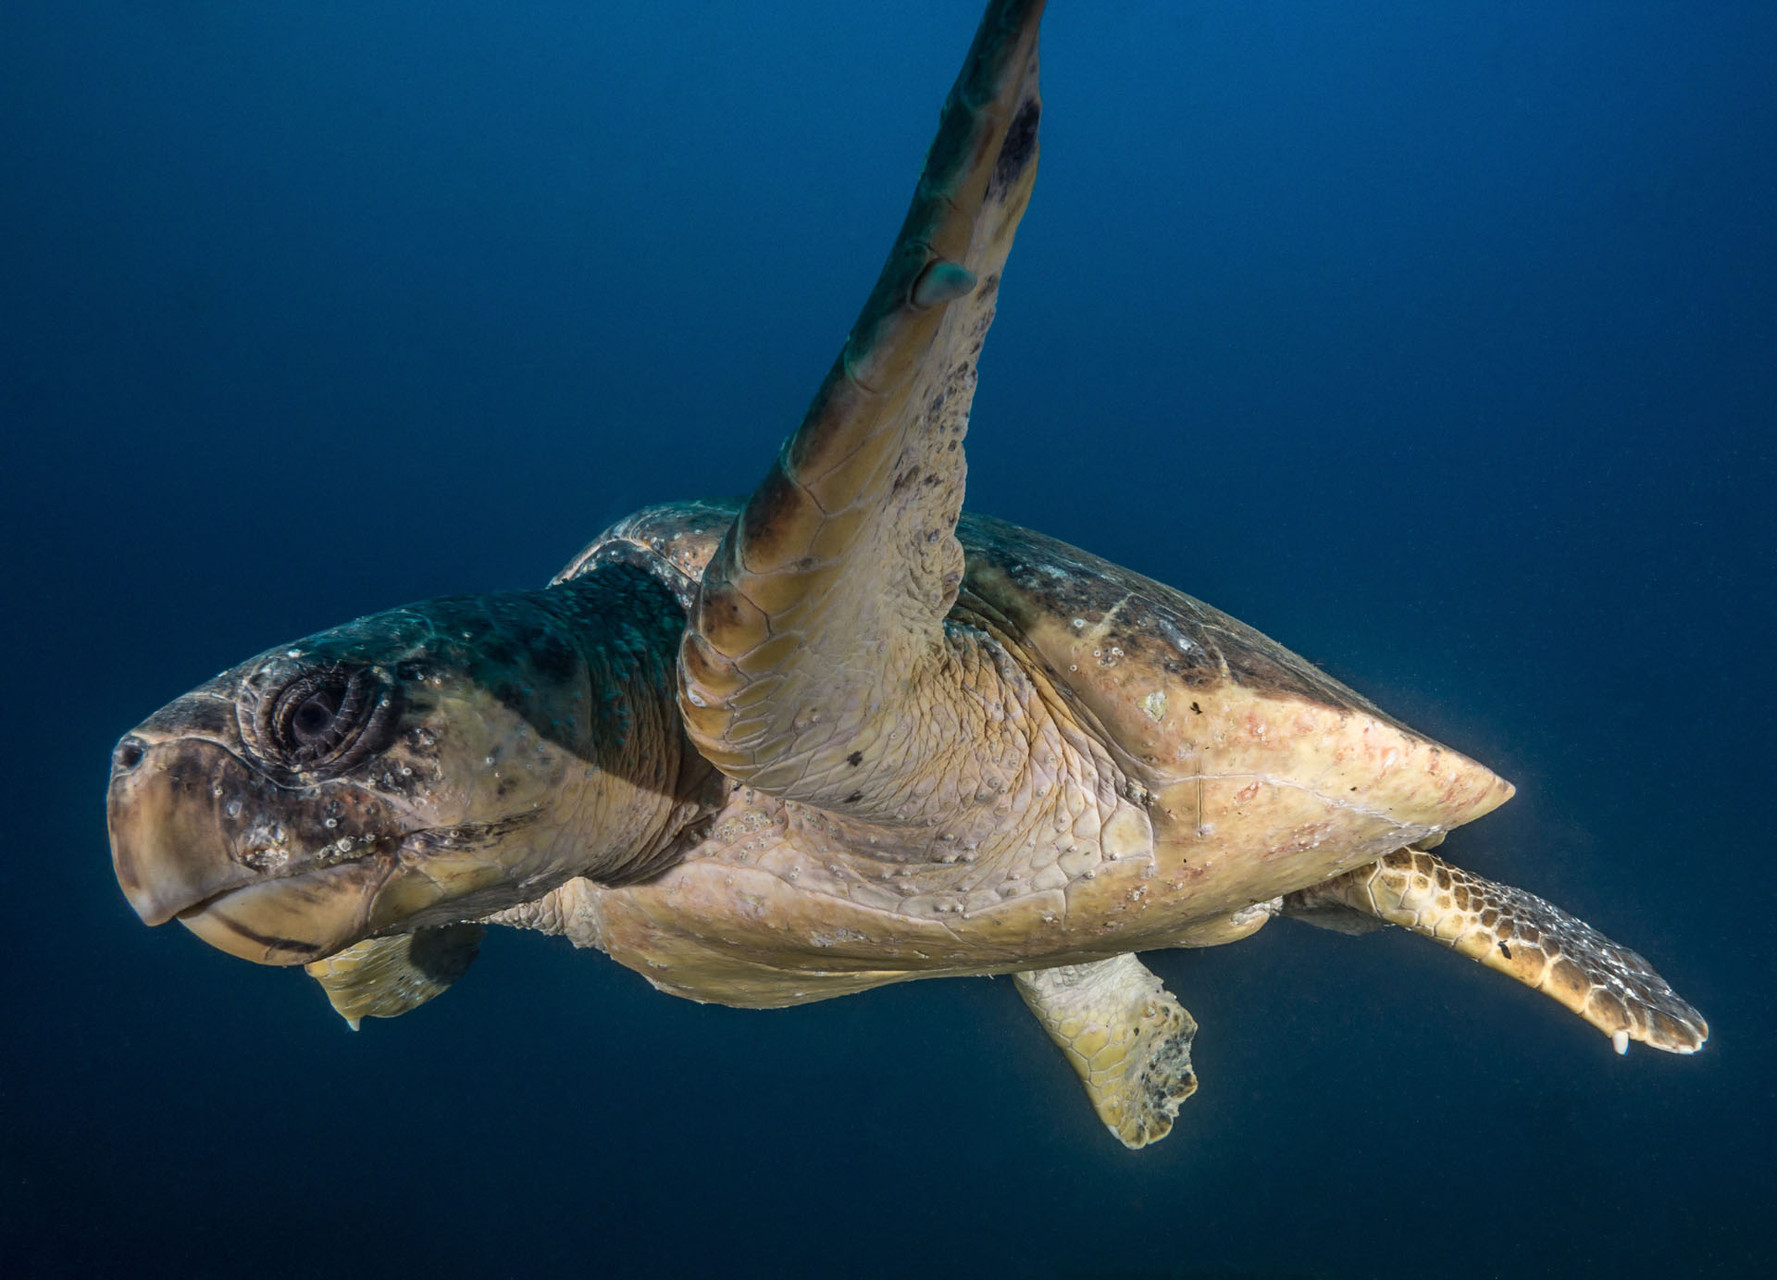 Turtle, Aliwal shoal [South Africa, 2015]